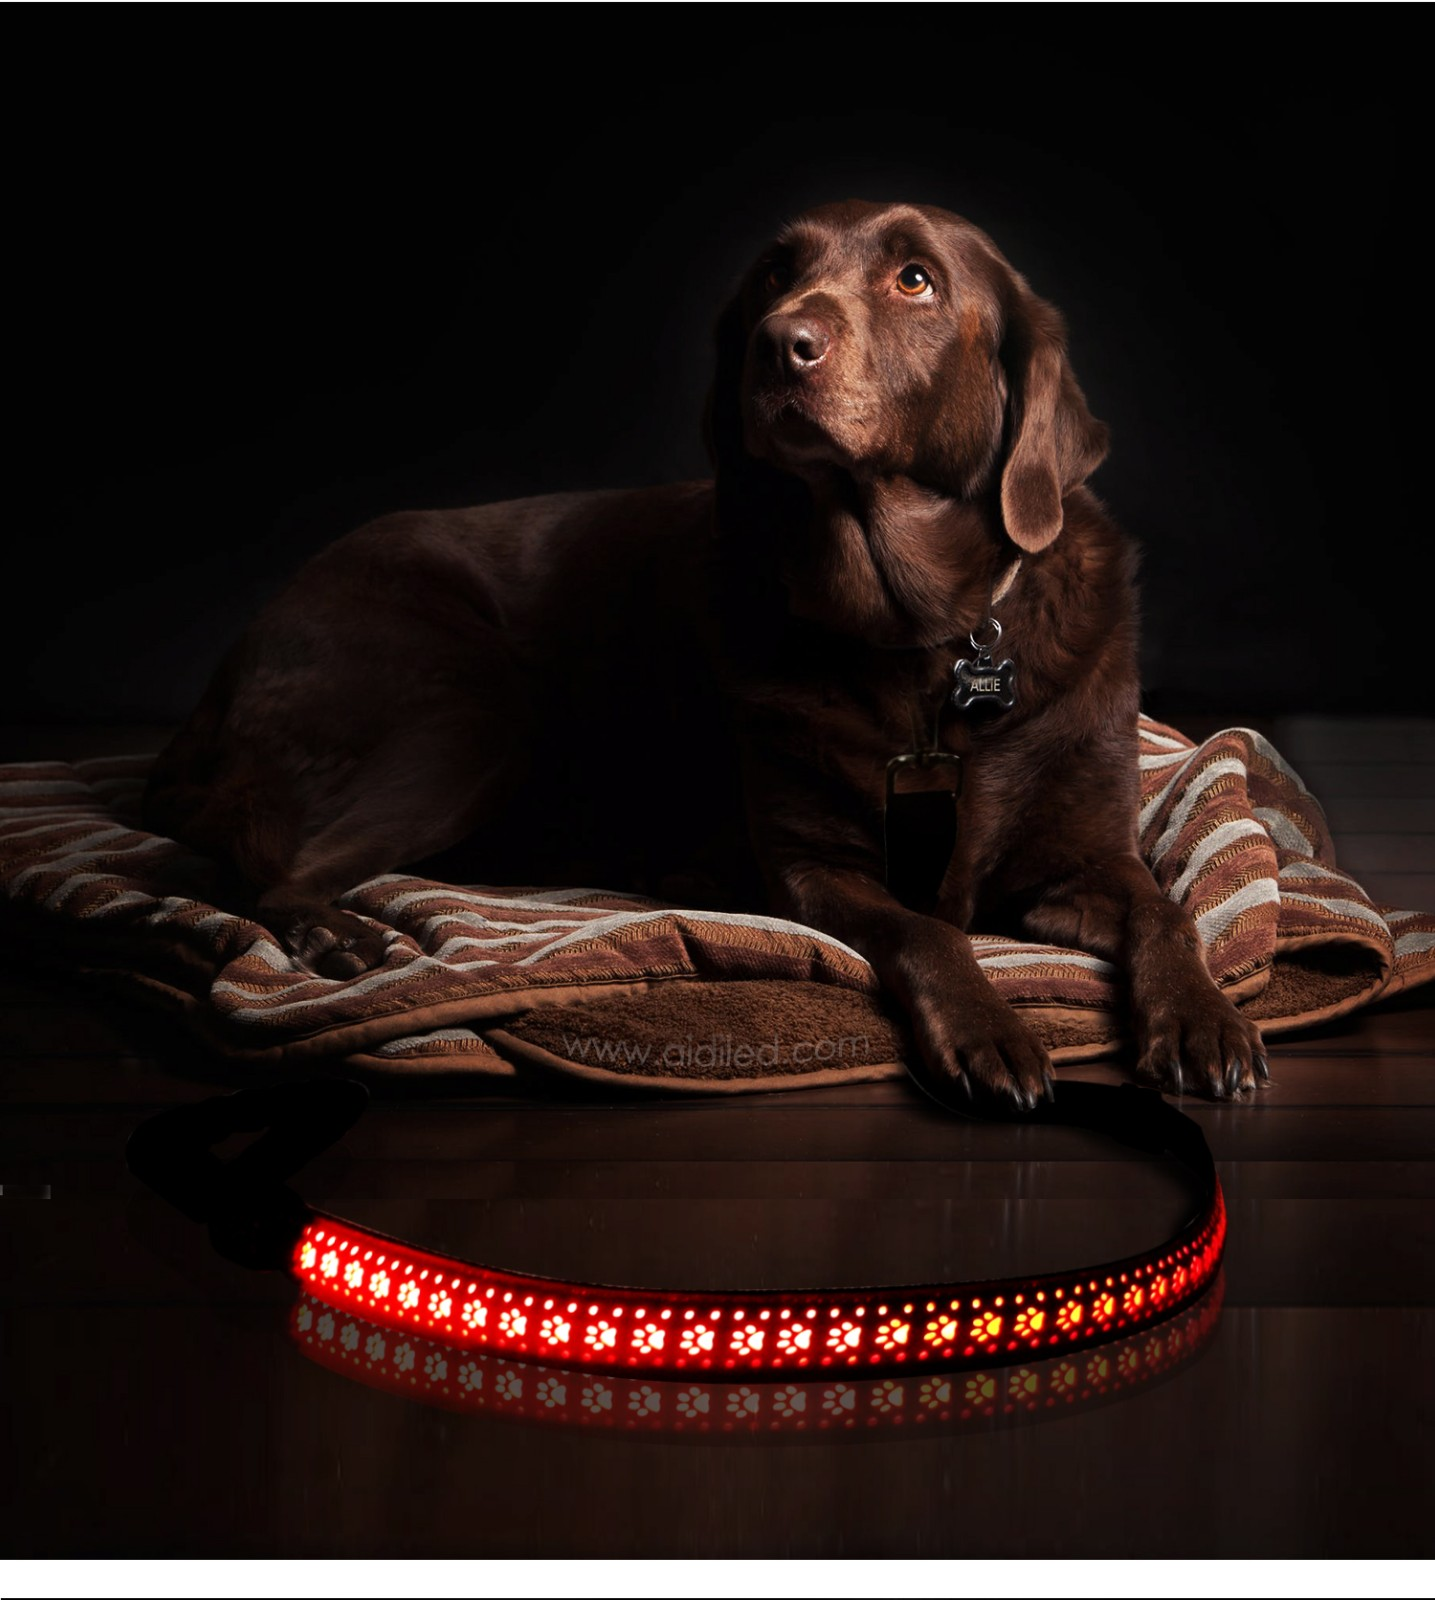 AIDI-High-quality Best Led Dog Leash | Led Pu Leather Dog Leash Aidi-l6-8